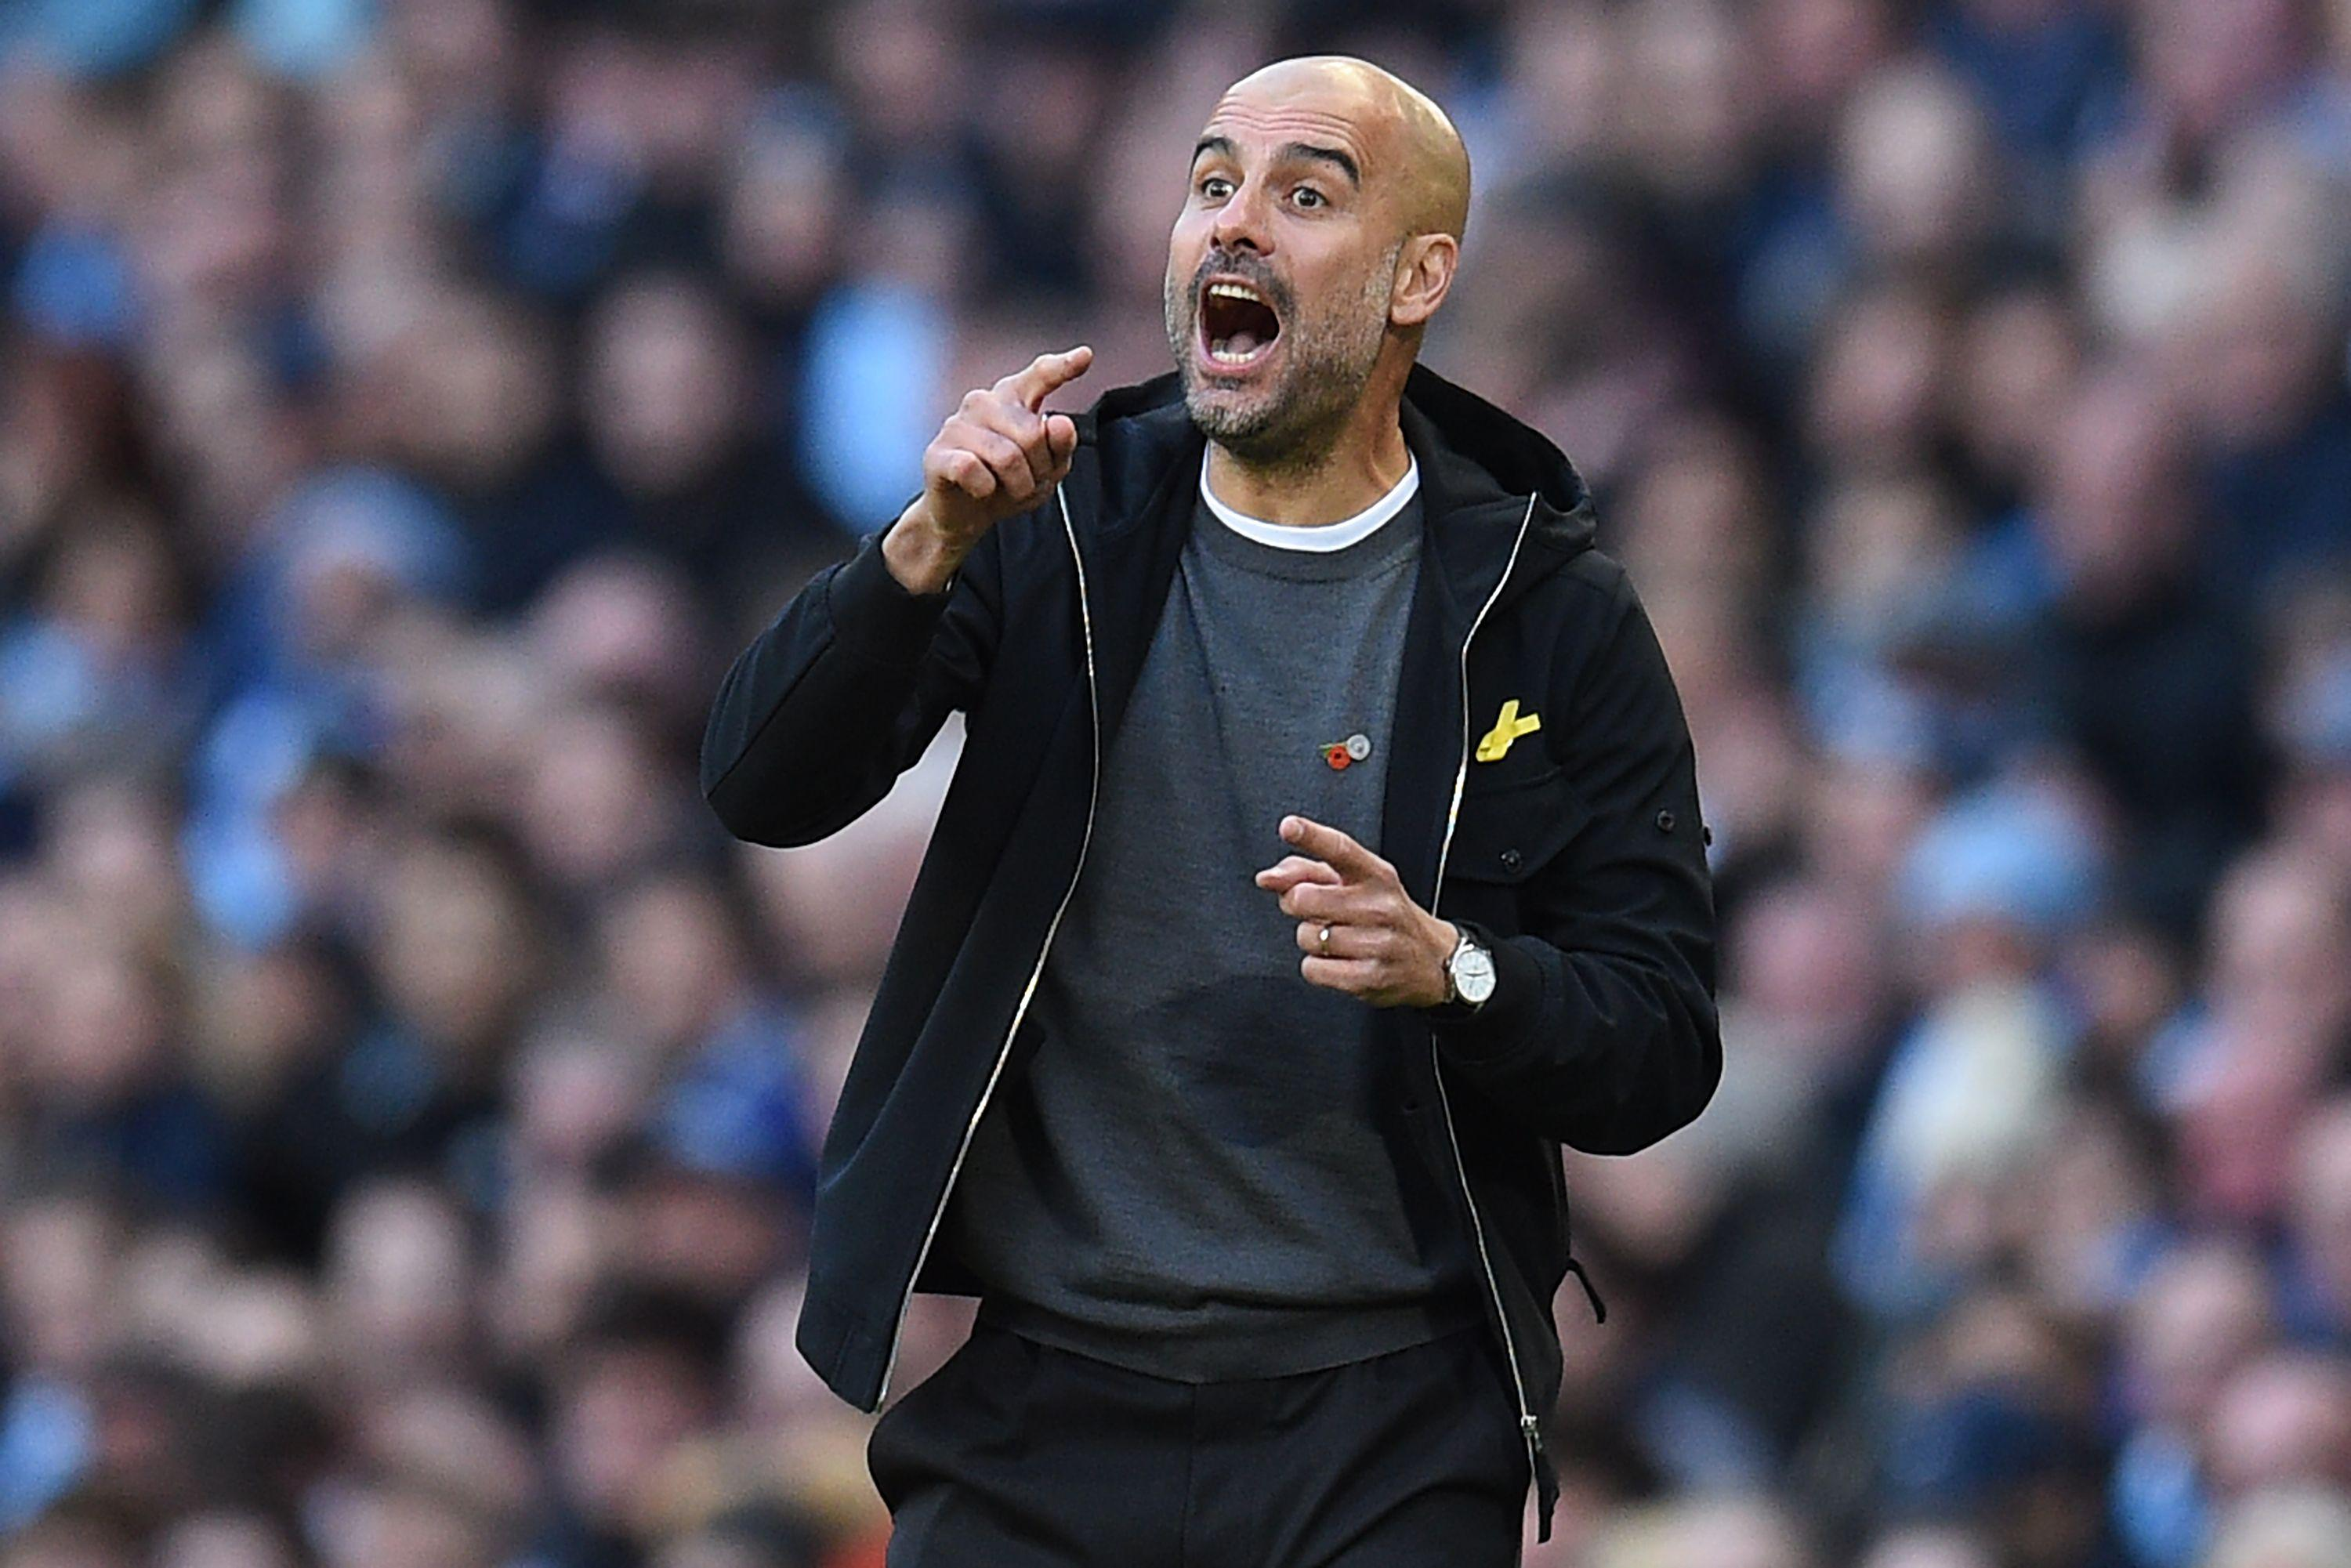 Is Guardiola's style to blame?